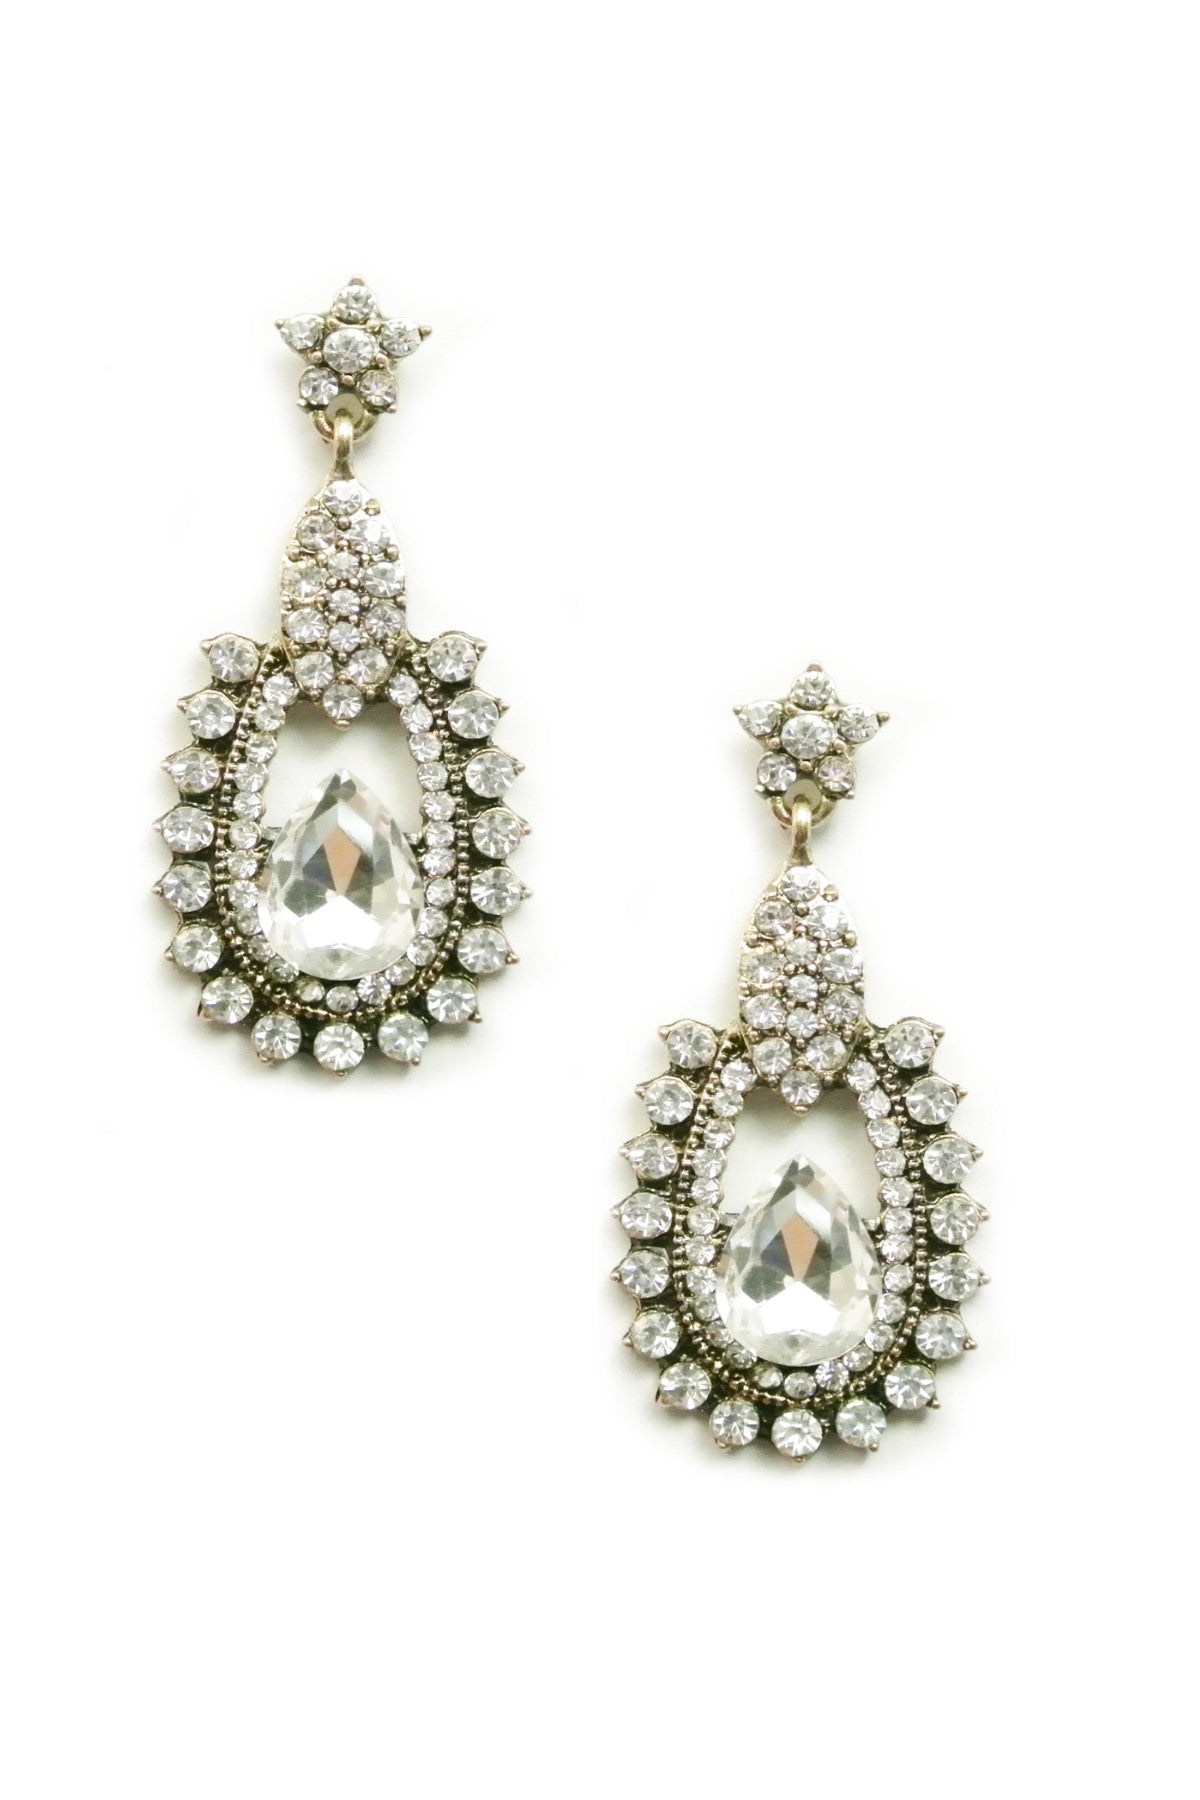 Romantic Vintage Crystal Drops